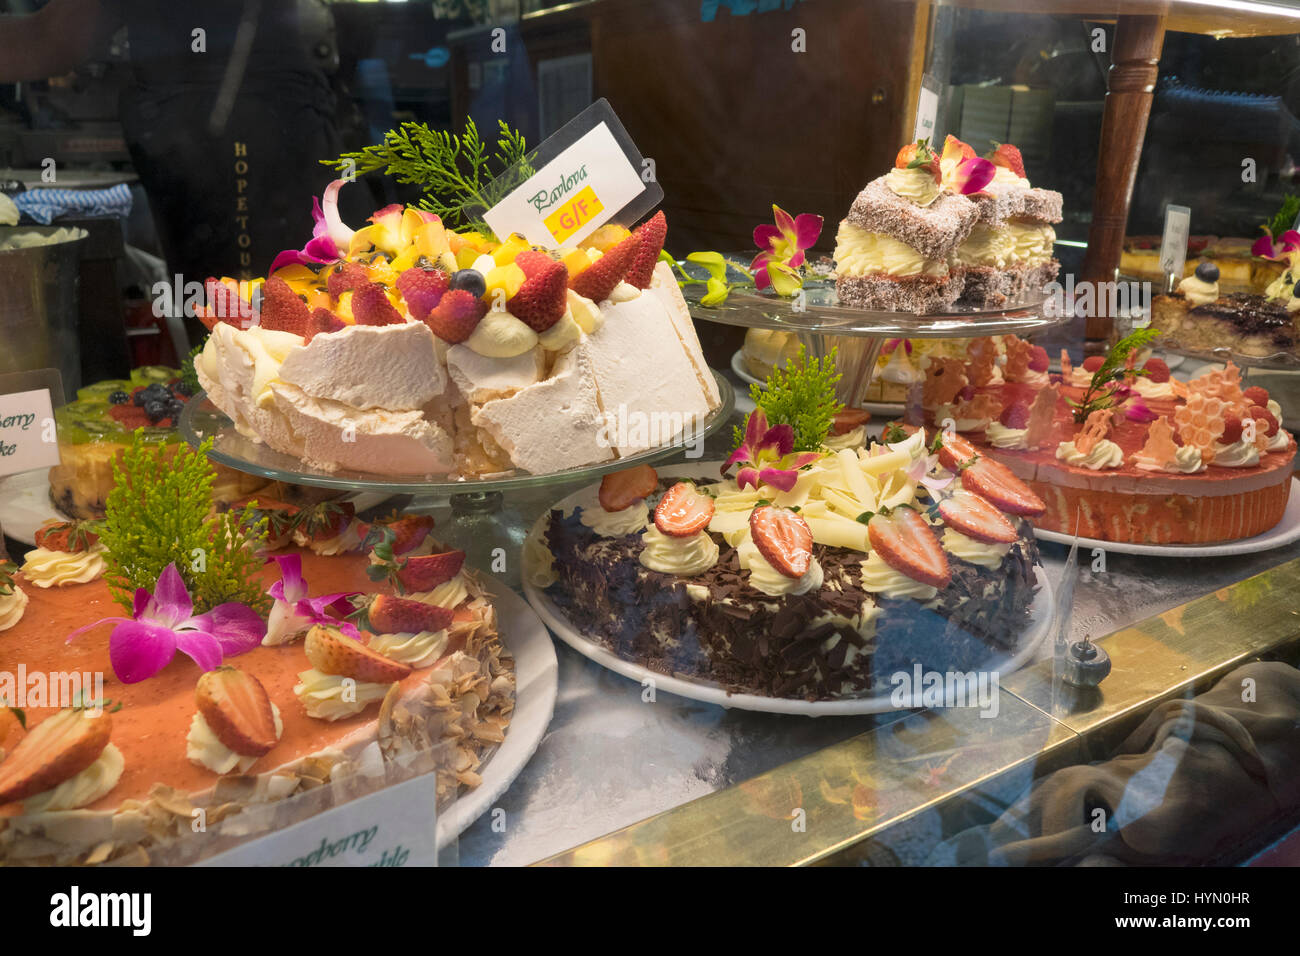 Delicious Cakes For Sale In The Window Display Of The Hopetoun Tea Rooms In The Block Arcade Melbourne Australia - Stock Image